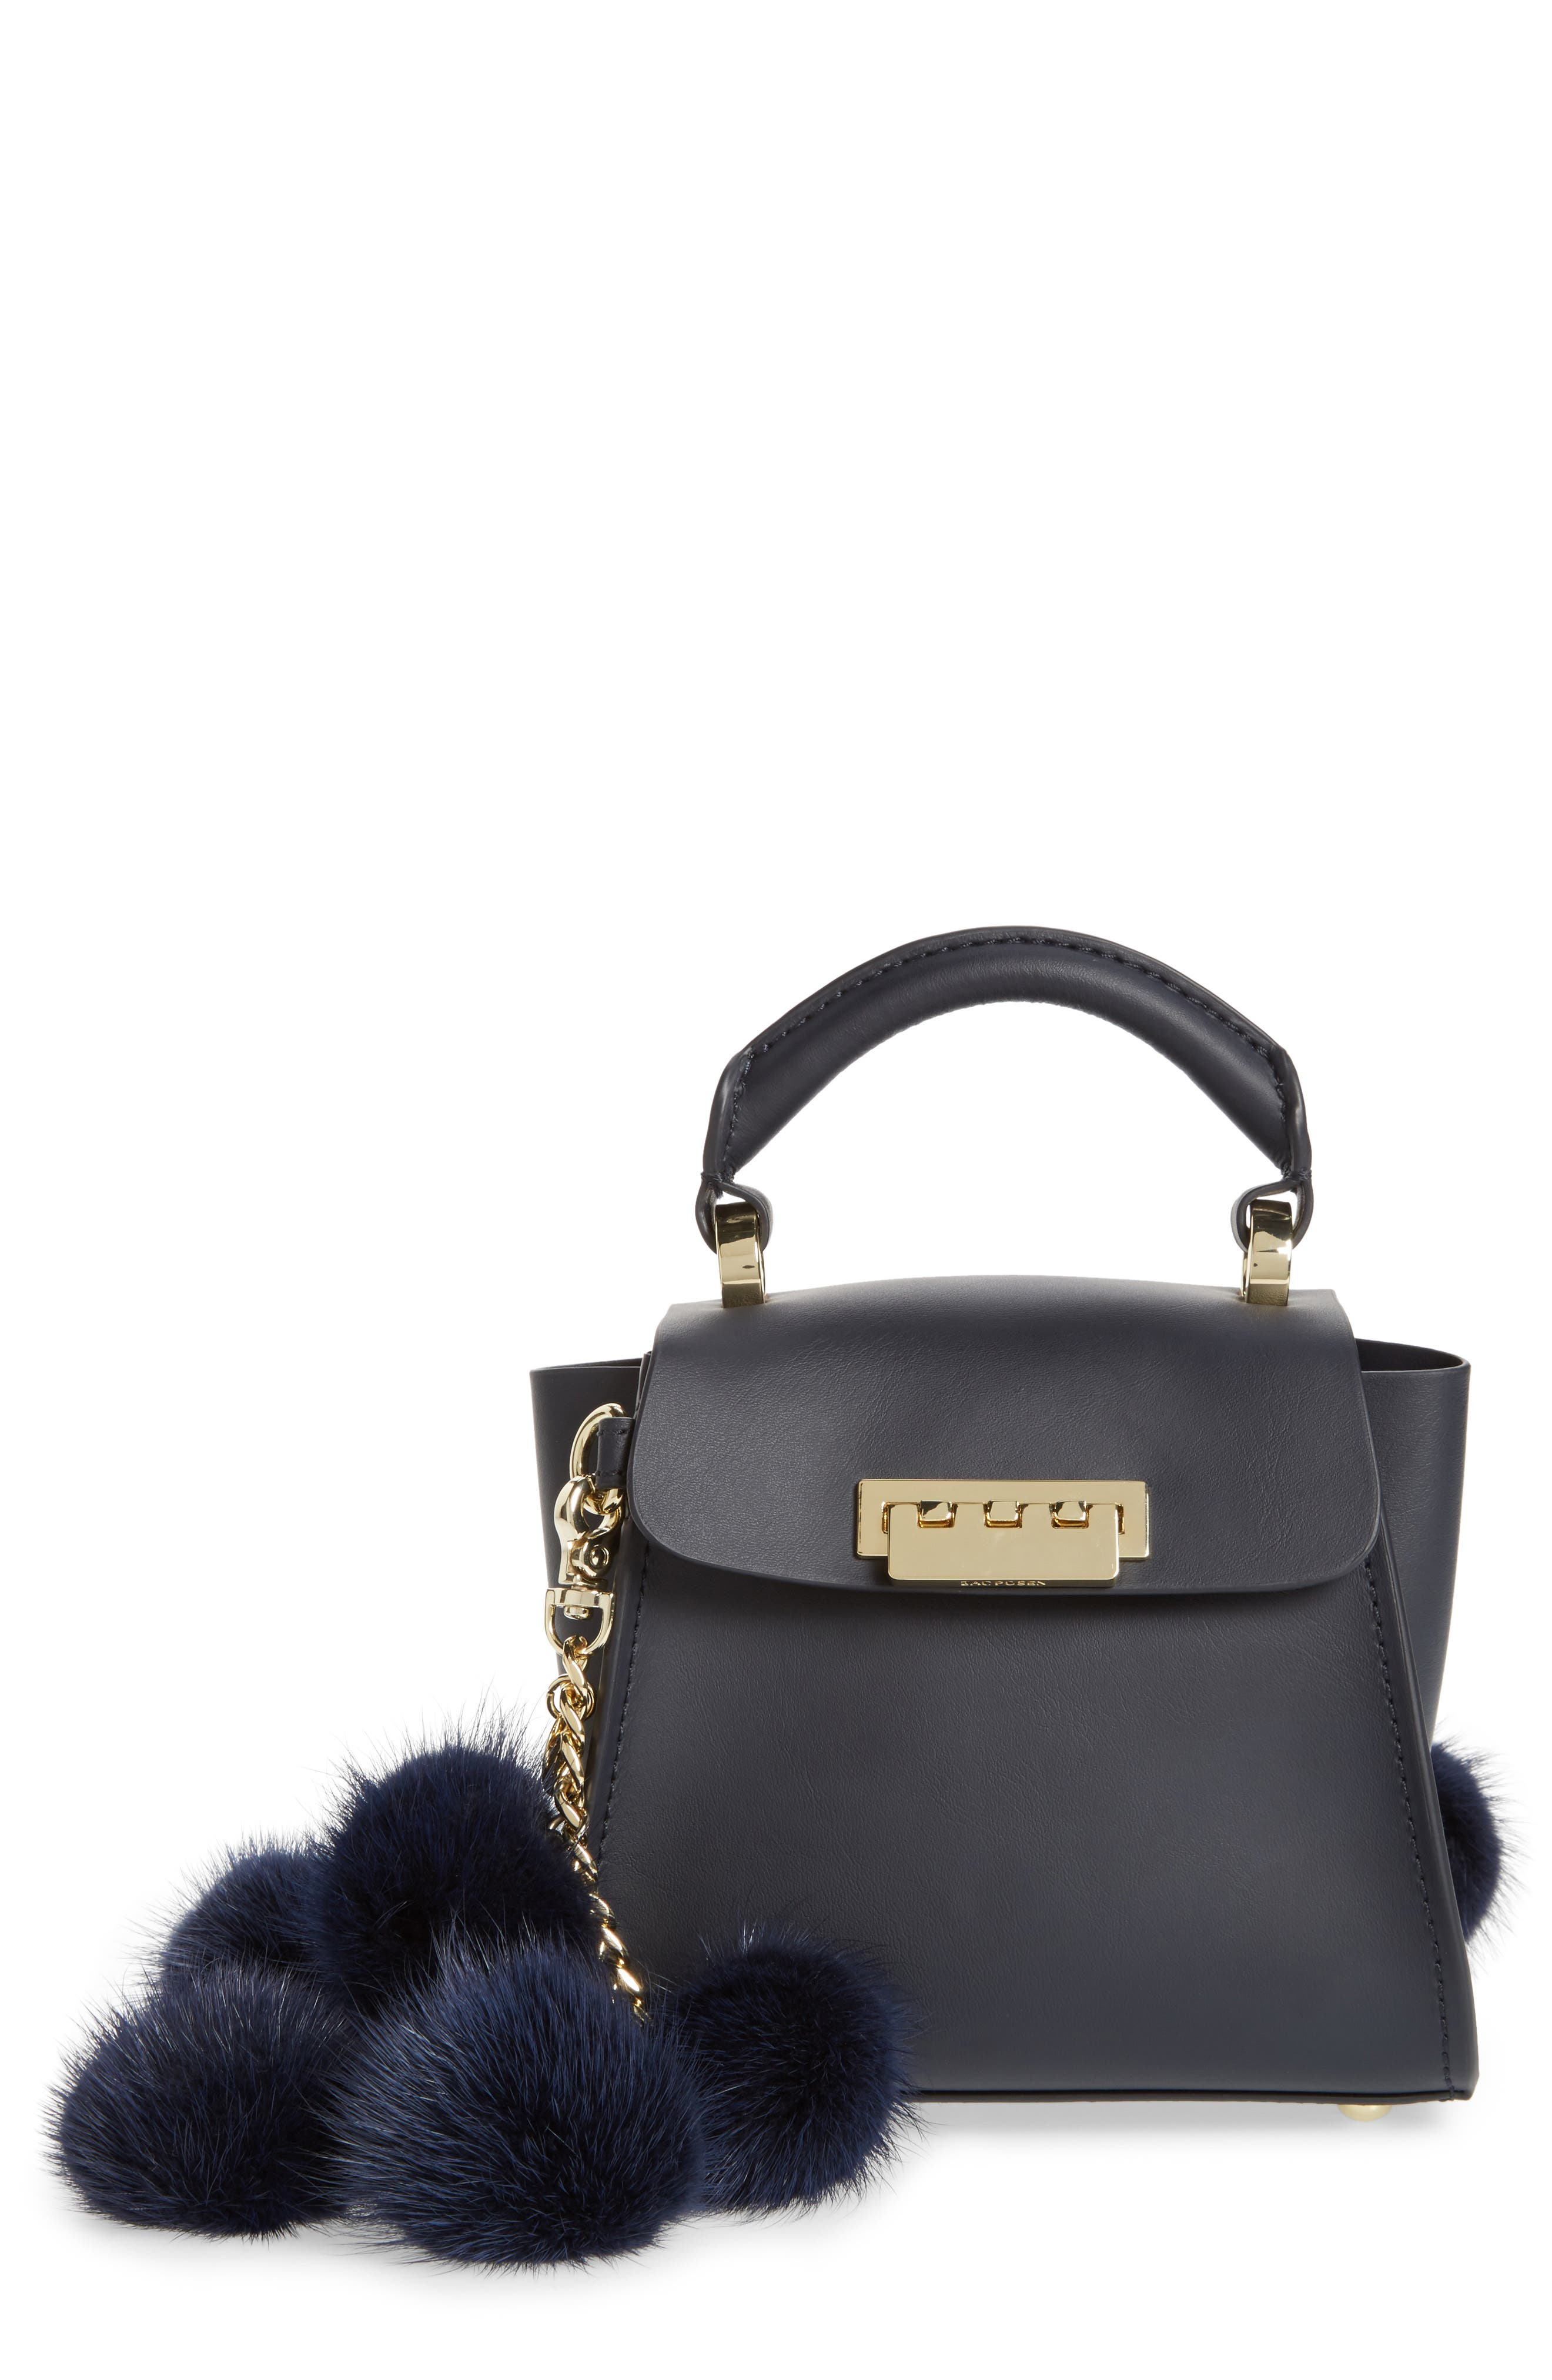 Alternate Image 1 Selected - ZAC Zac Posen Eartha Iconic Leather Satchel with Genuine Mink Fur Strap